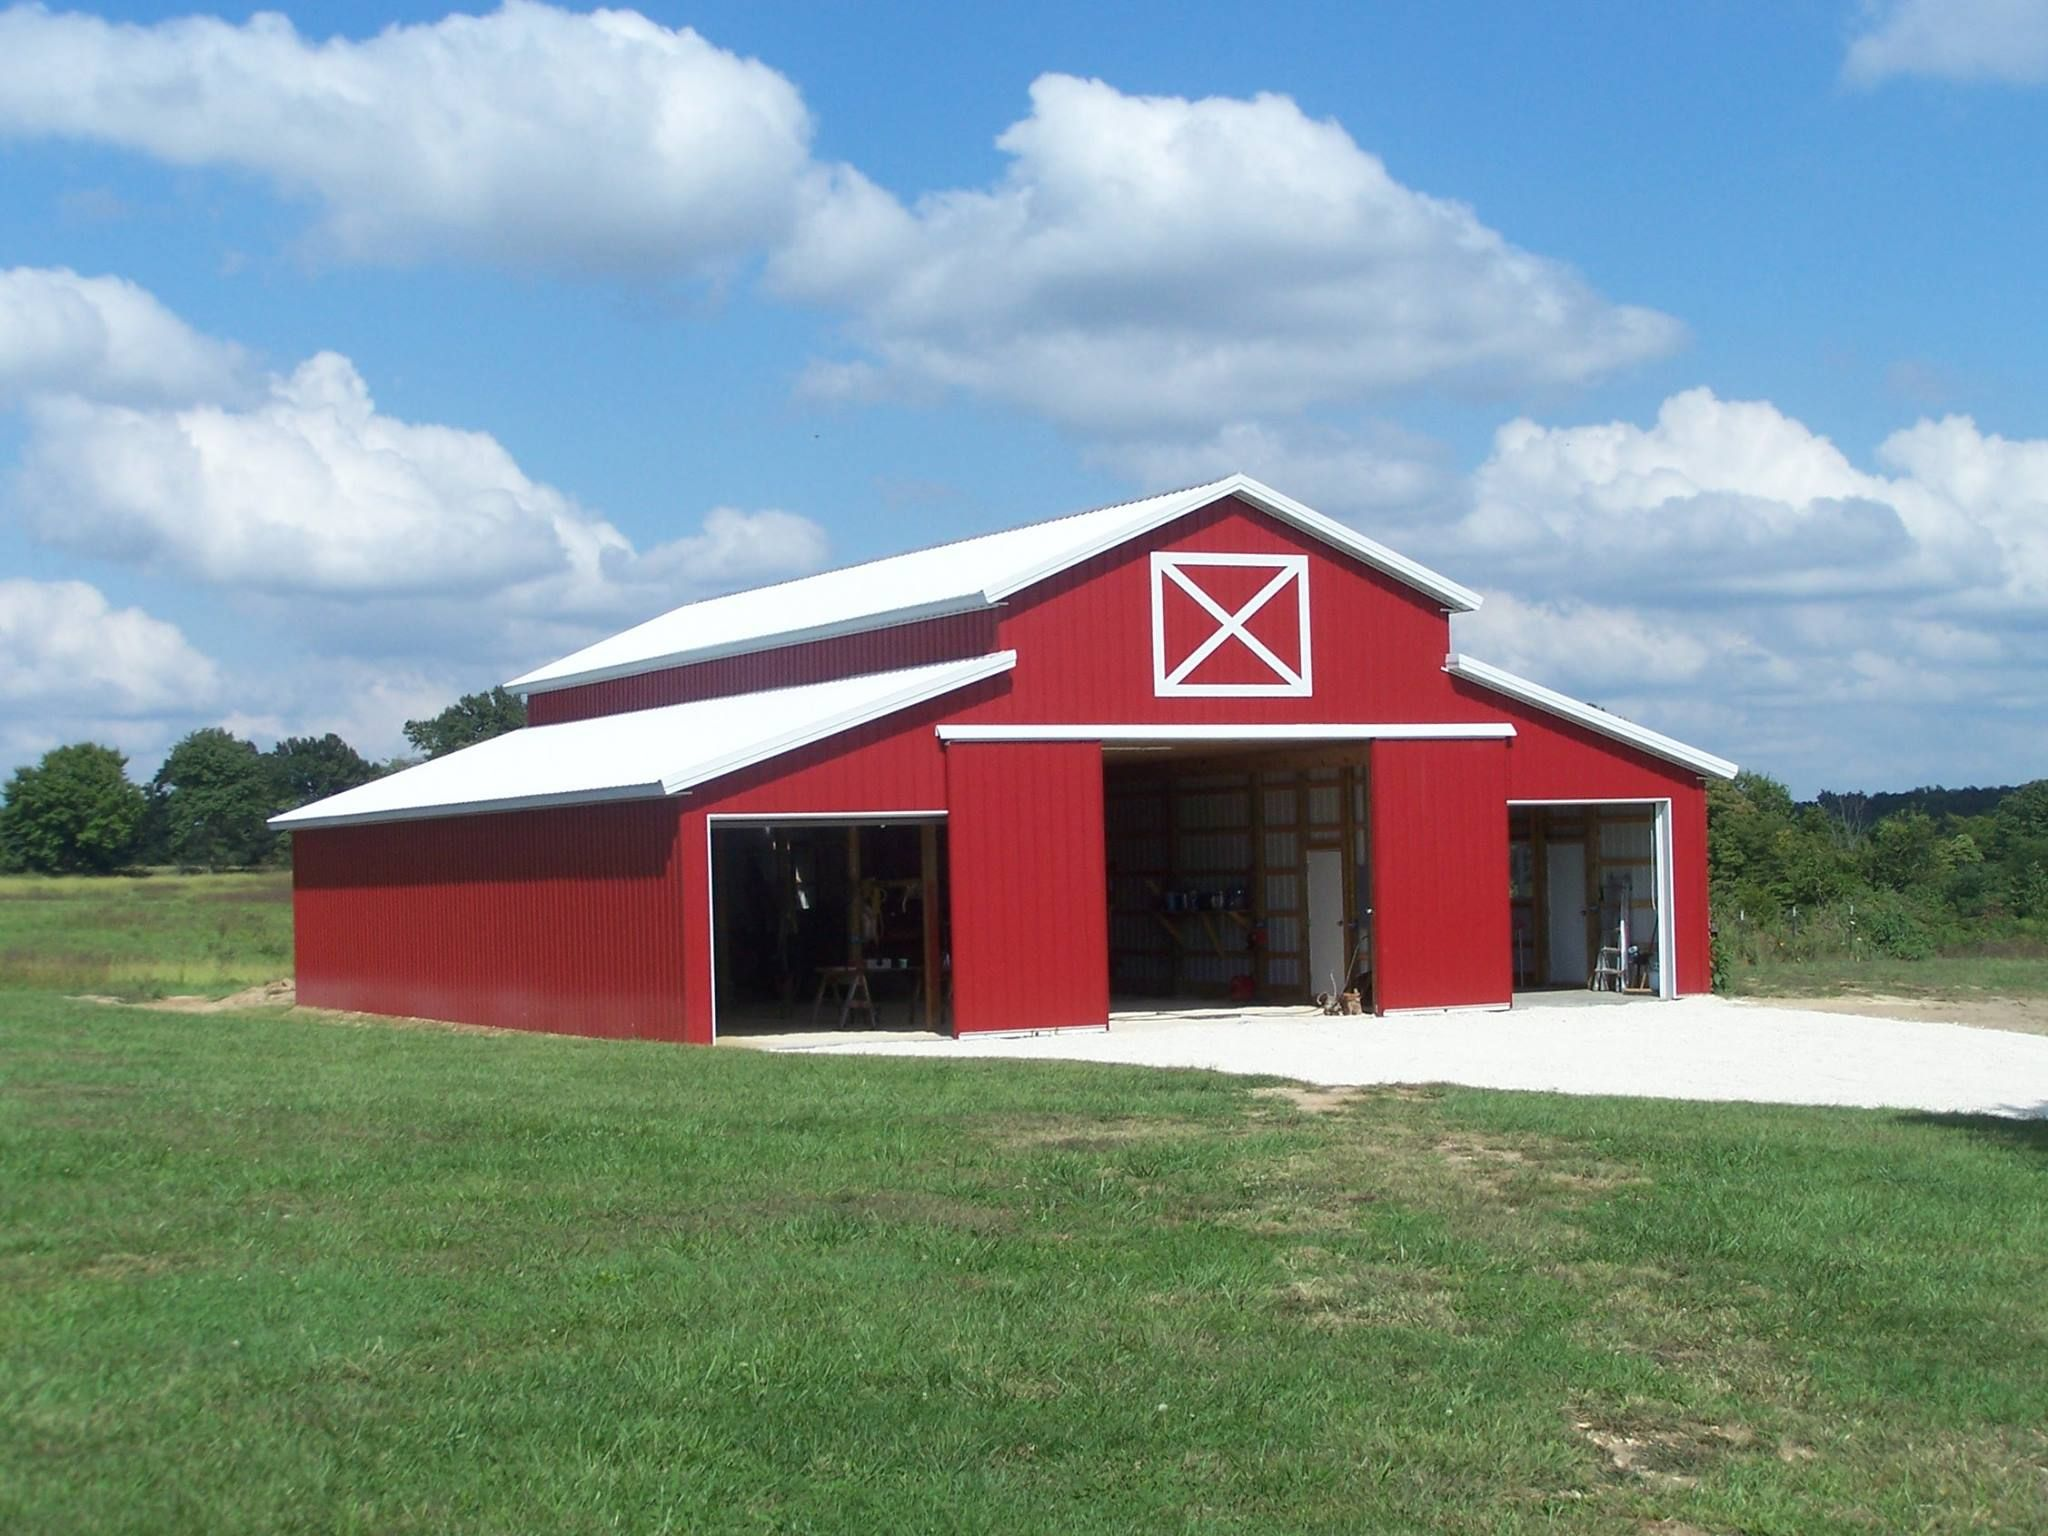 Barn Metal Red Metal Sided Barn Metal Buildings Houses And Tin Roofs